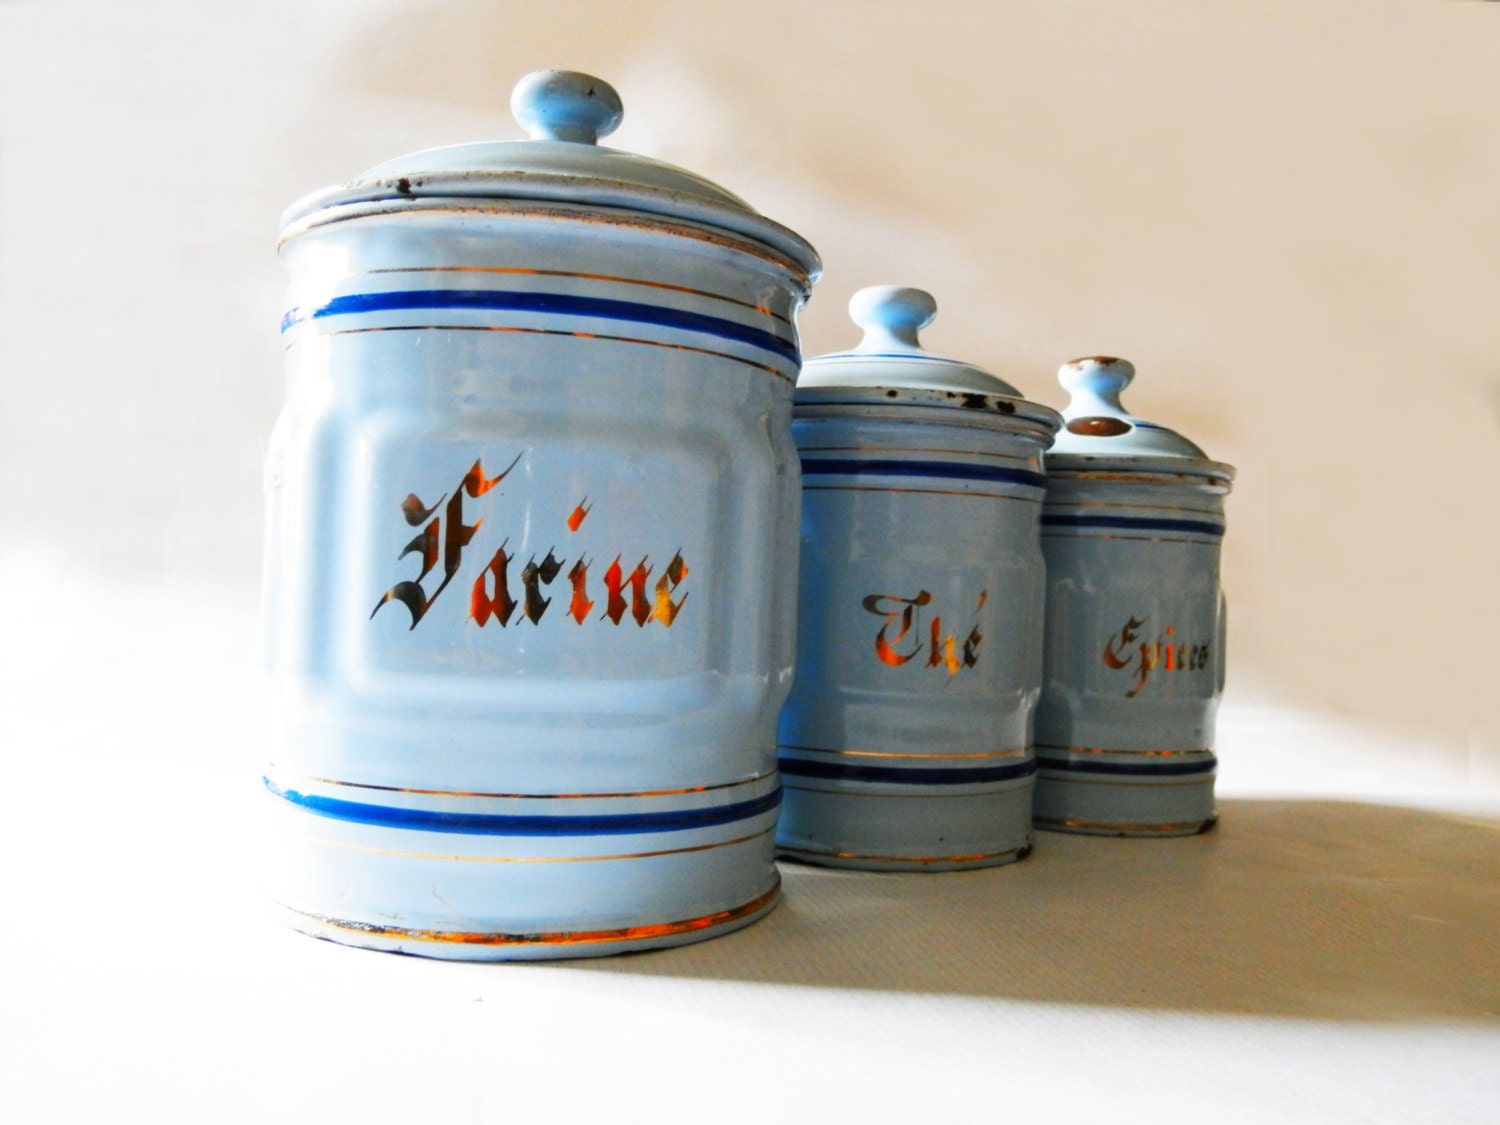 1930 s french kitchen blue canisters set by enamel retro kitchen canisters white blue grey tea